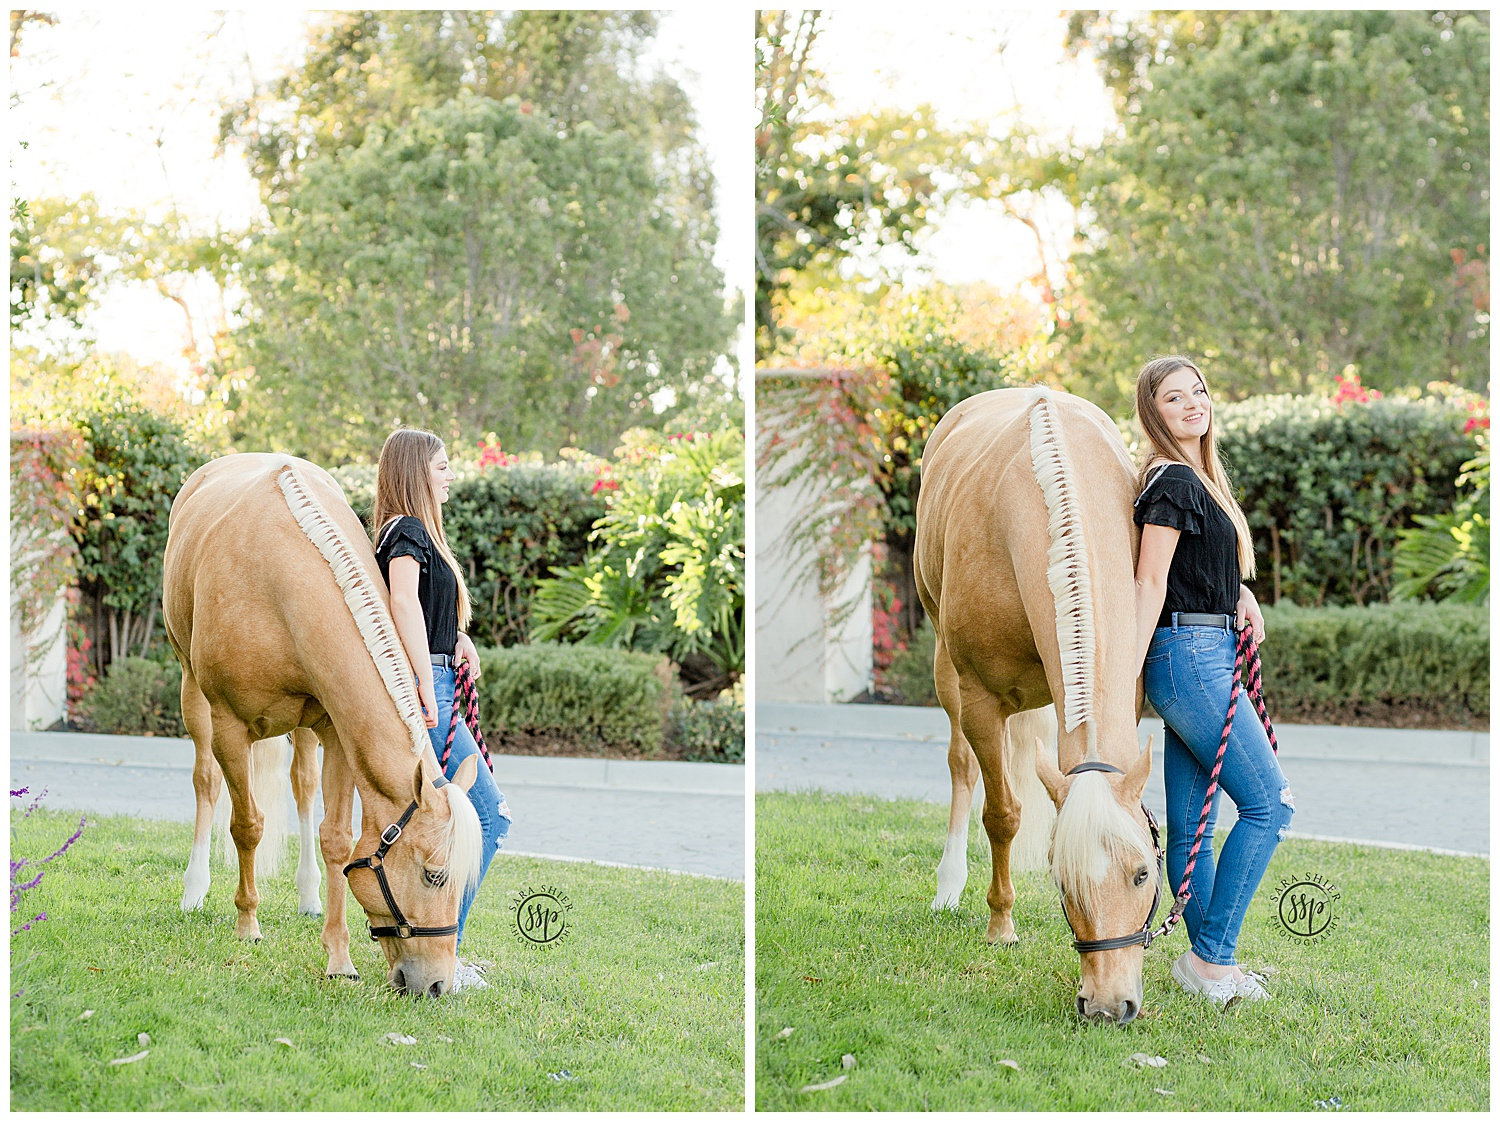 Black Background Horse Rider Equine Photographer Southern California Sara Shier Photography SoCal Equestrian Cowgirl_0376.jpg